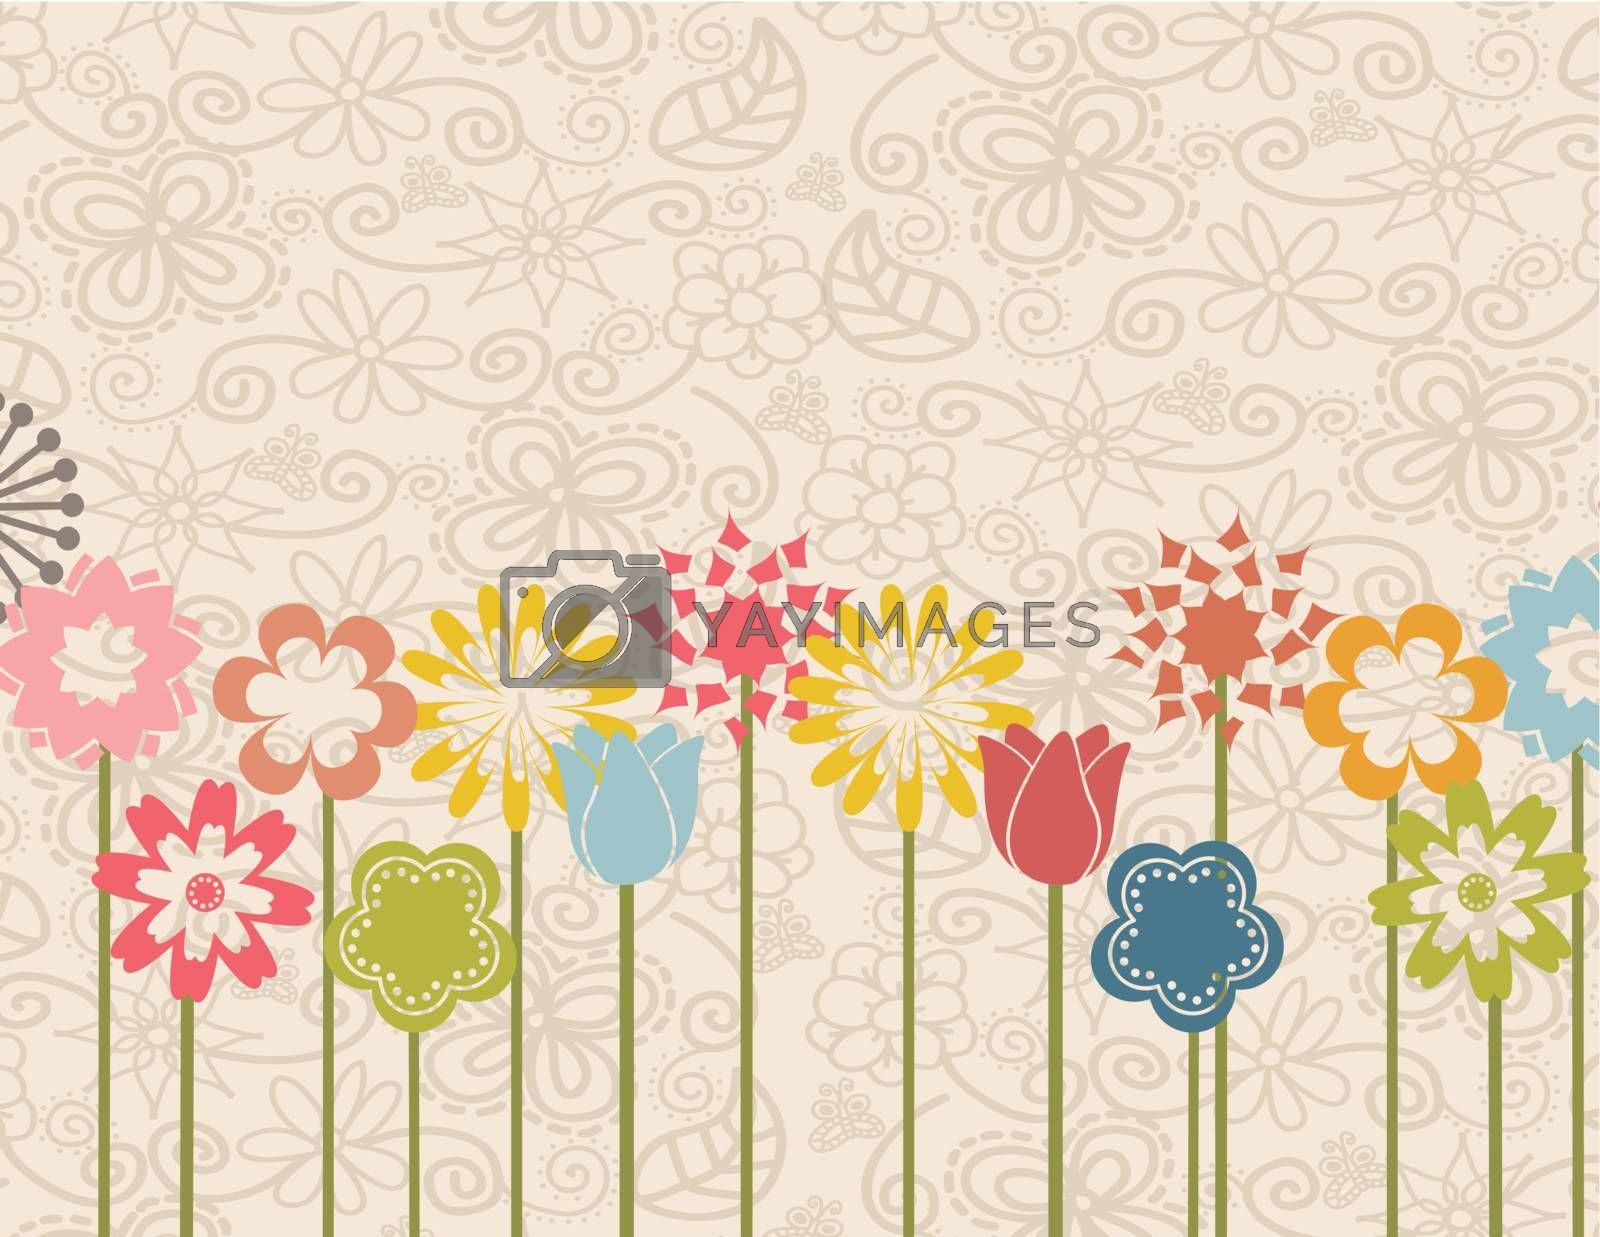 Garden over flower background vector illustration